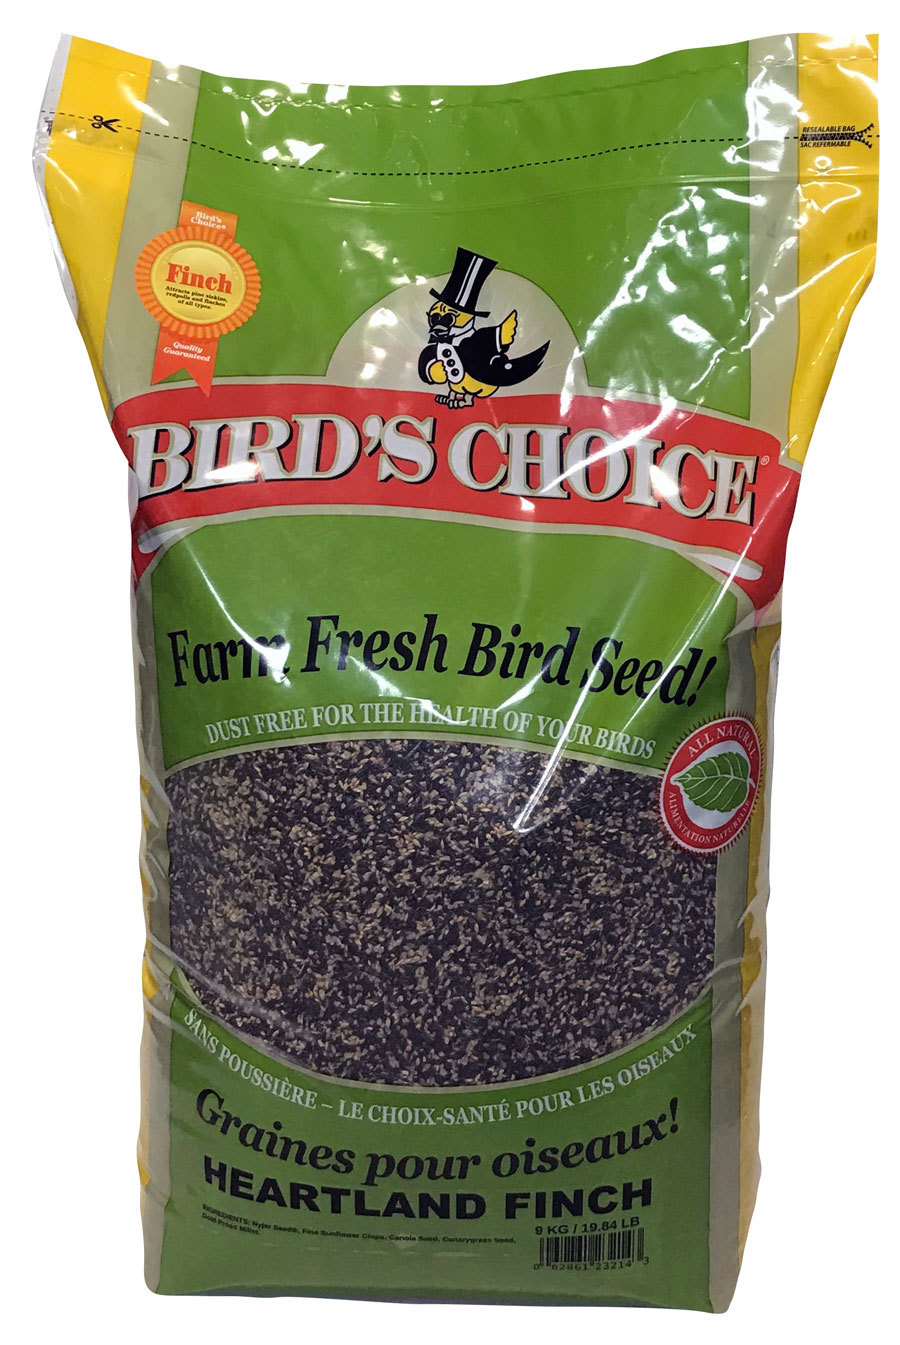 Heartland Finch Mix